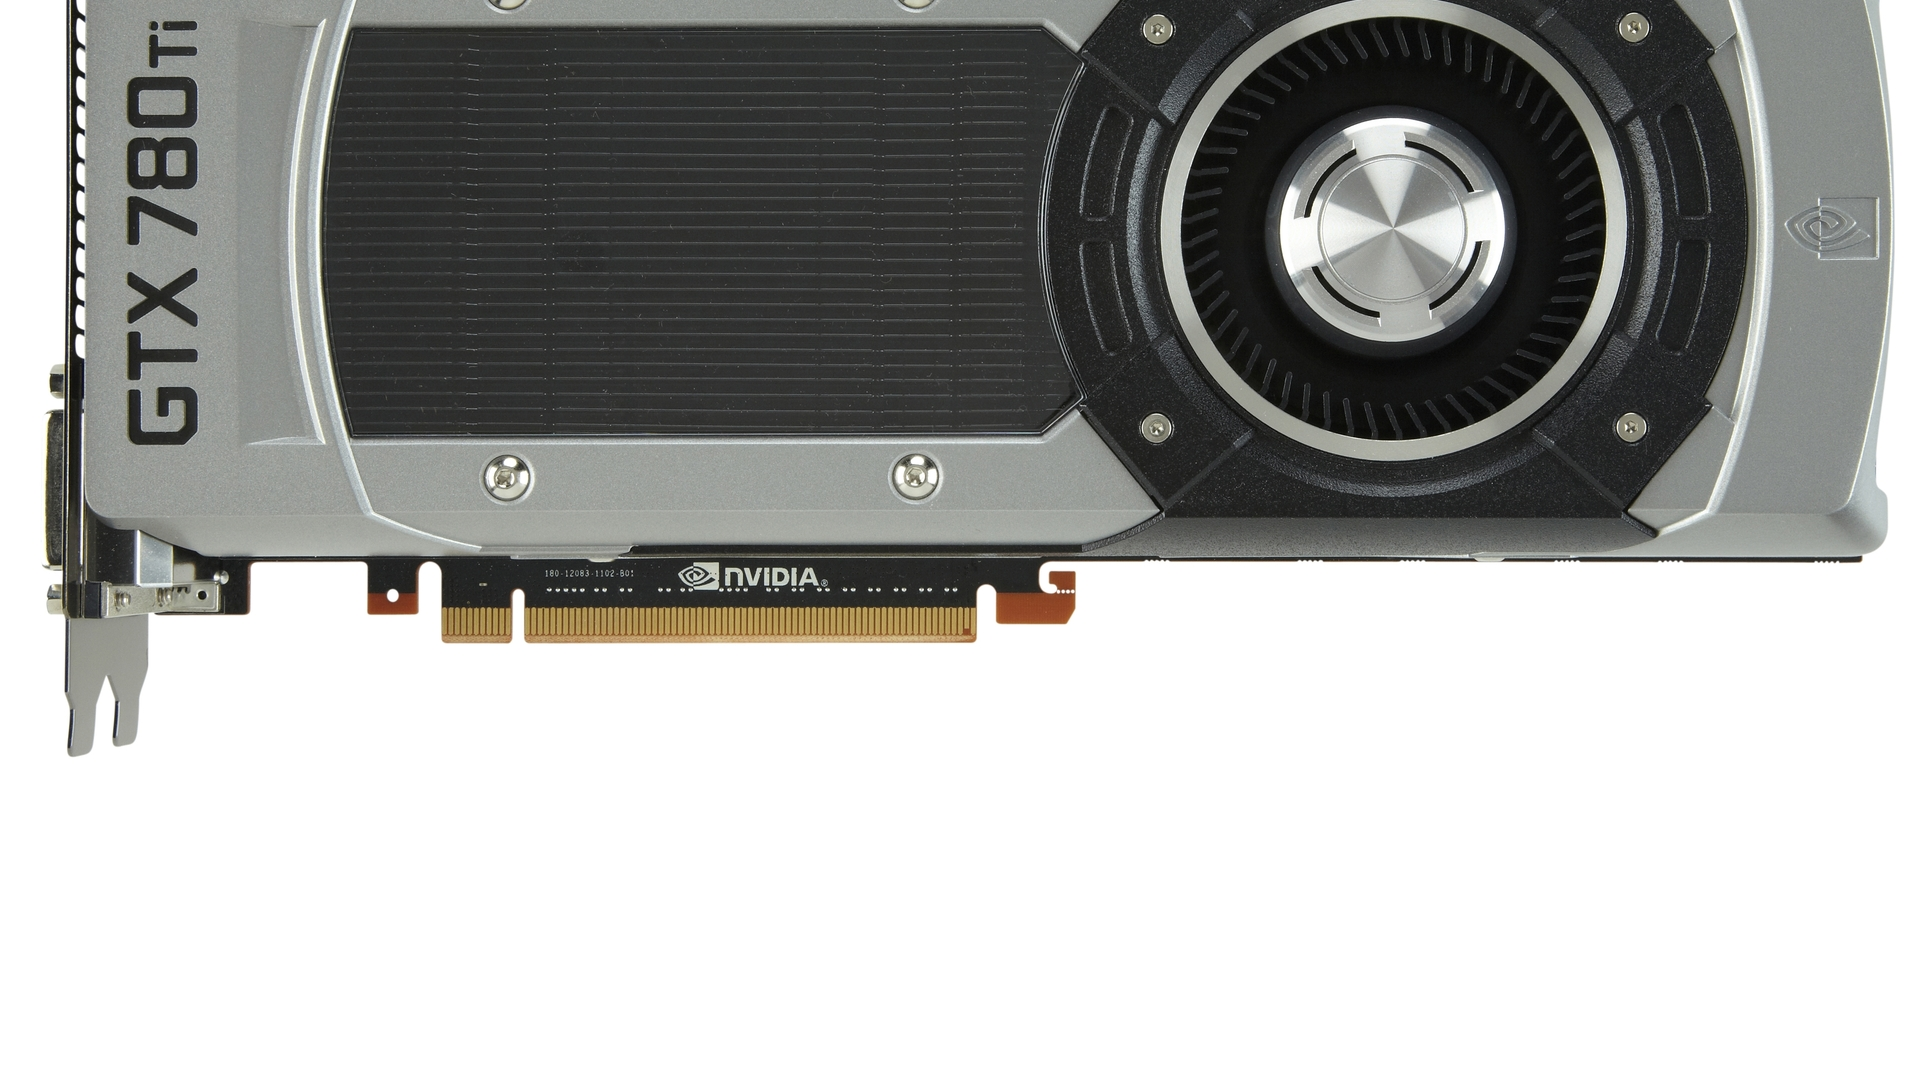 Nvidia Geforce Gtx 780 Ti Review New Xbox 360 Uses 45nm Chip With Combined Cpu Gpu Techspot